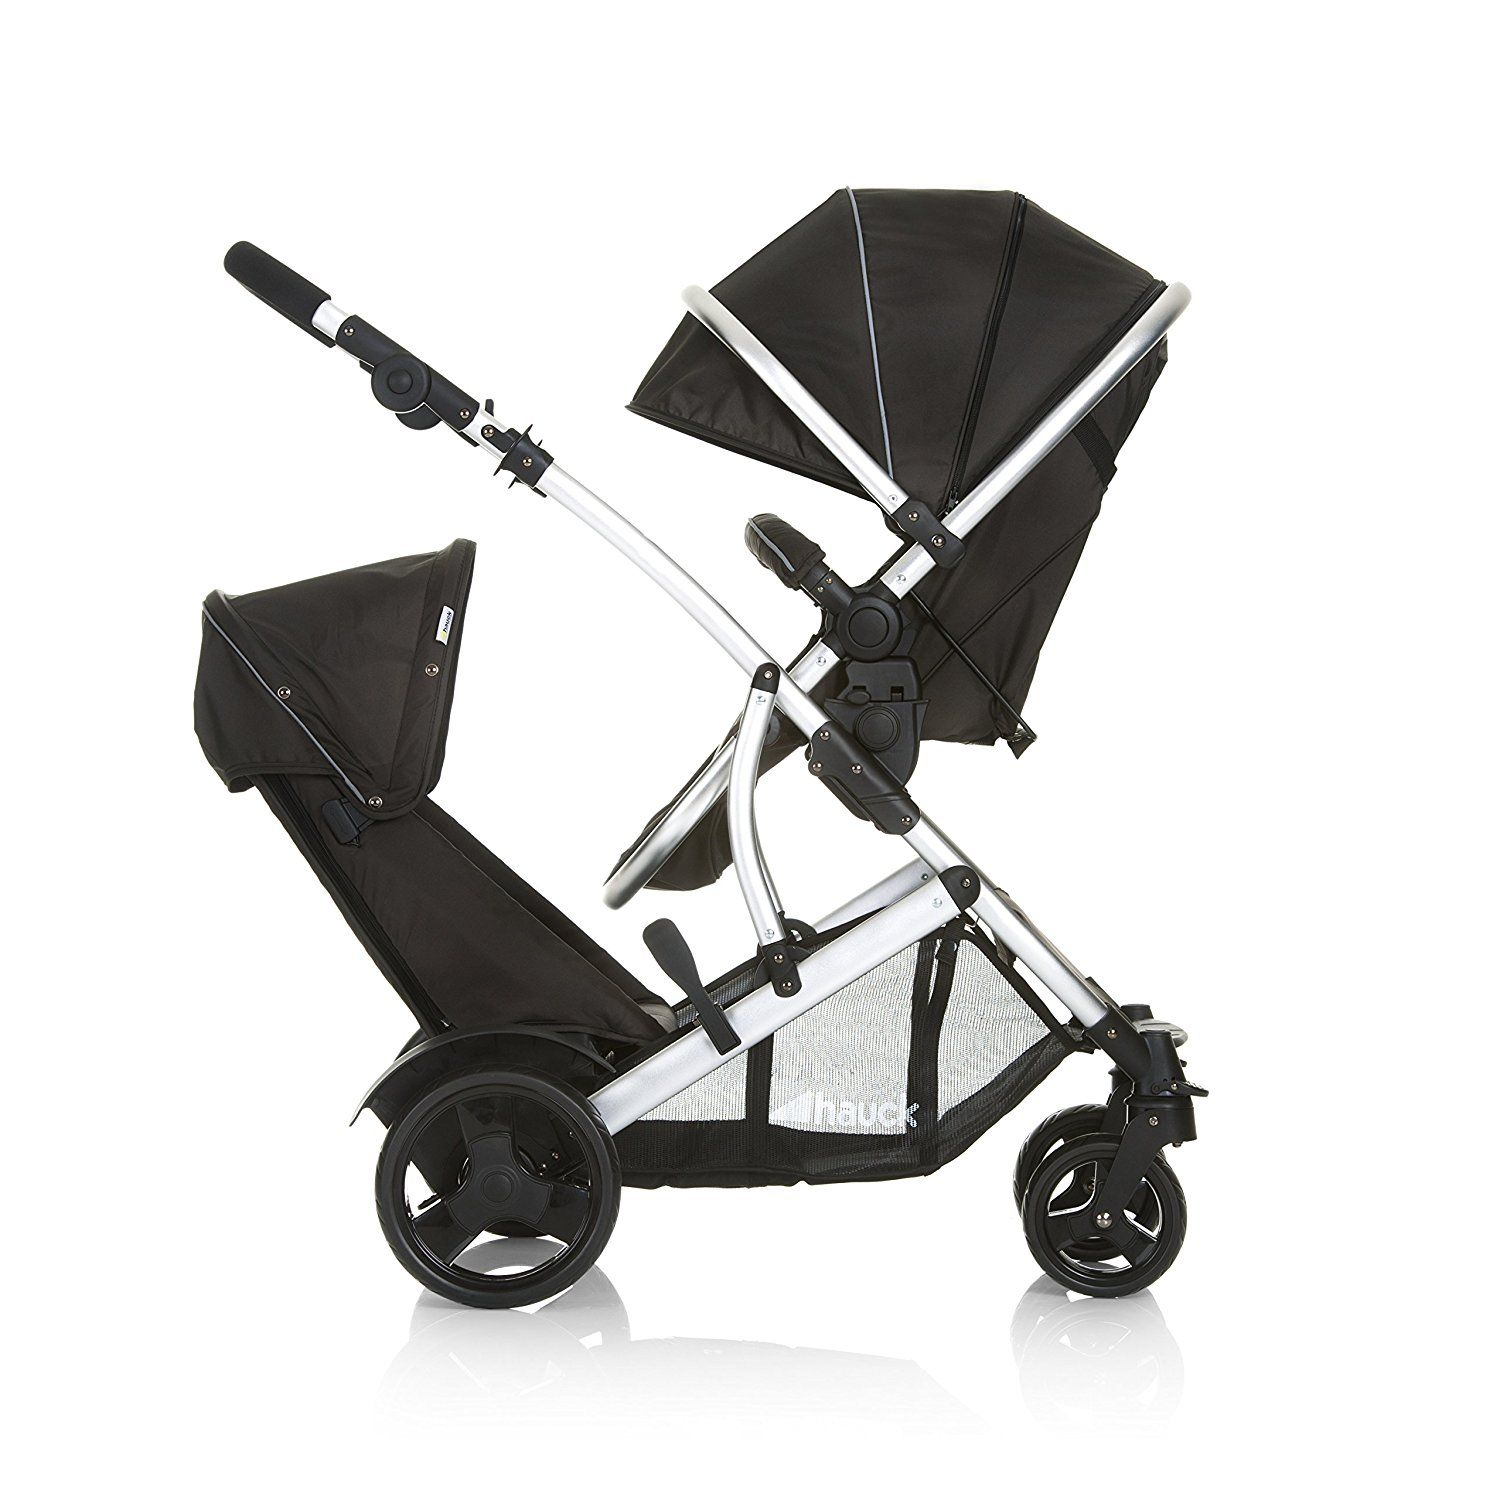 Buggy Joie Leicht Hauck Duett Two Tandem Twin Pushchair Amazon Co Uk Baby